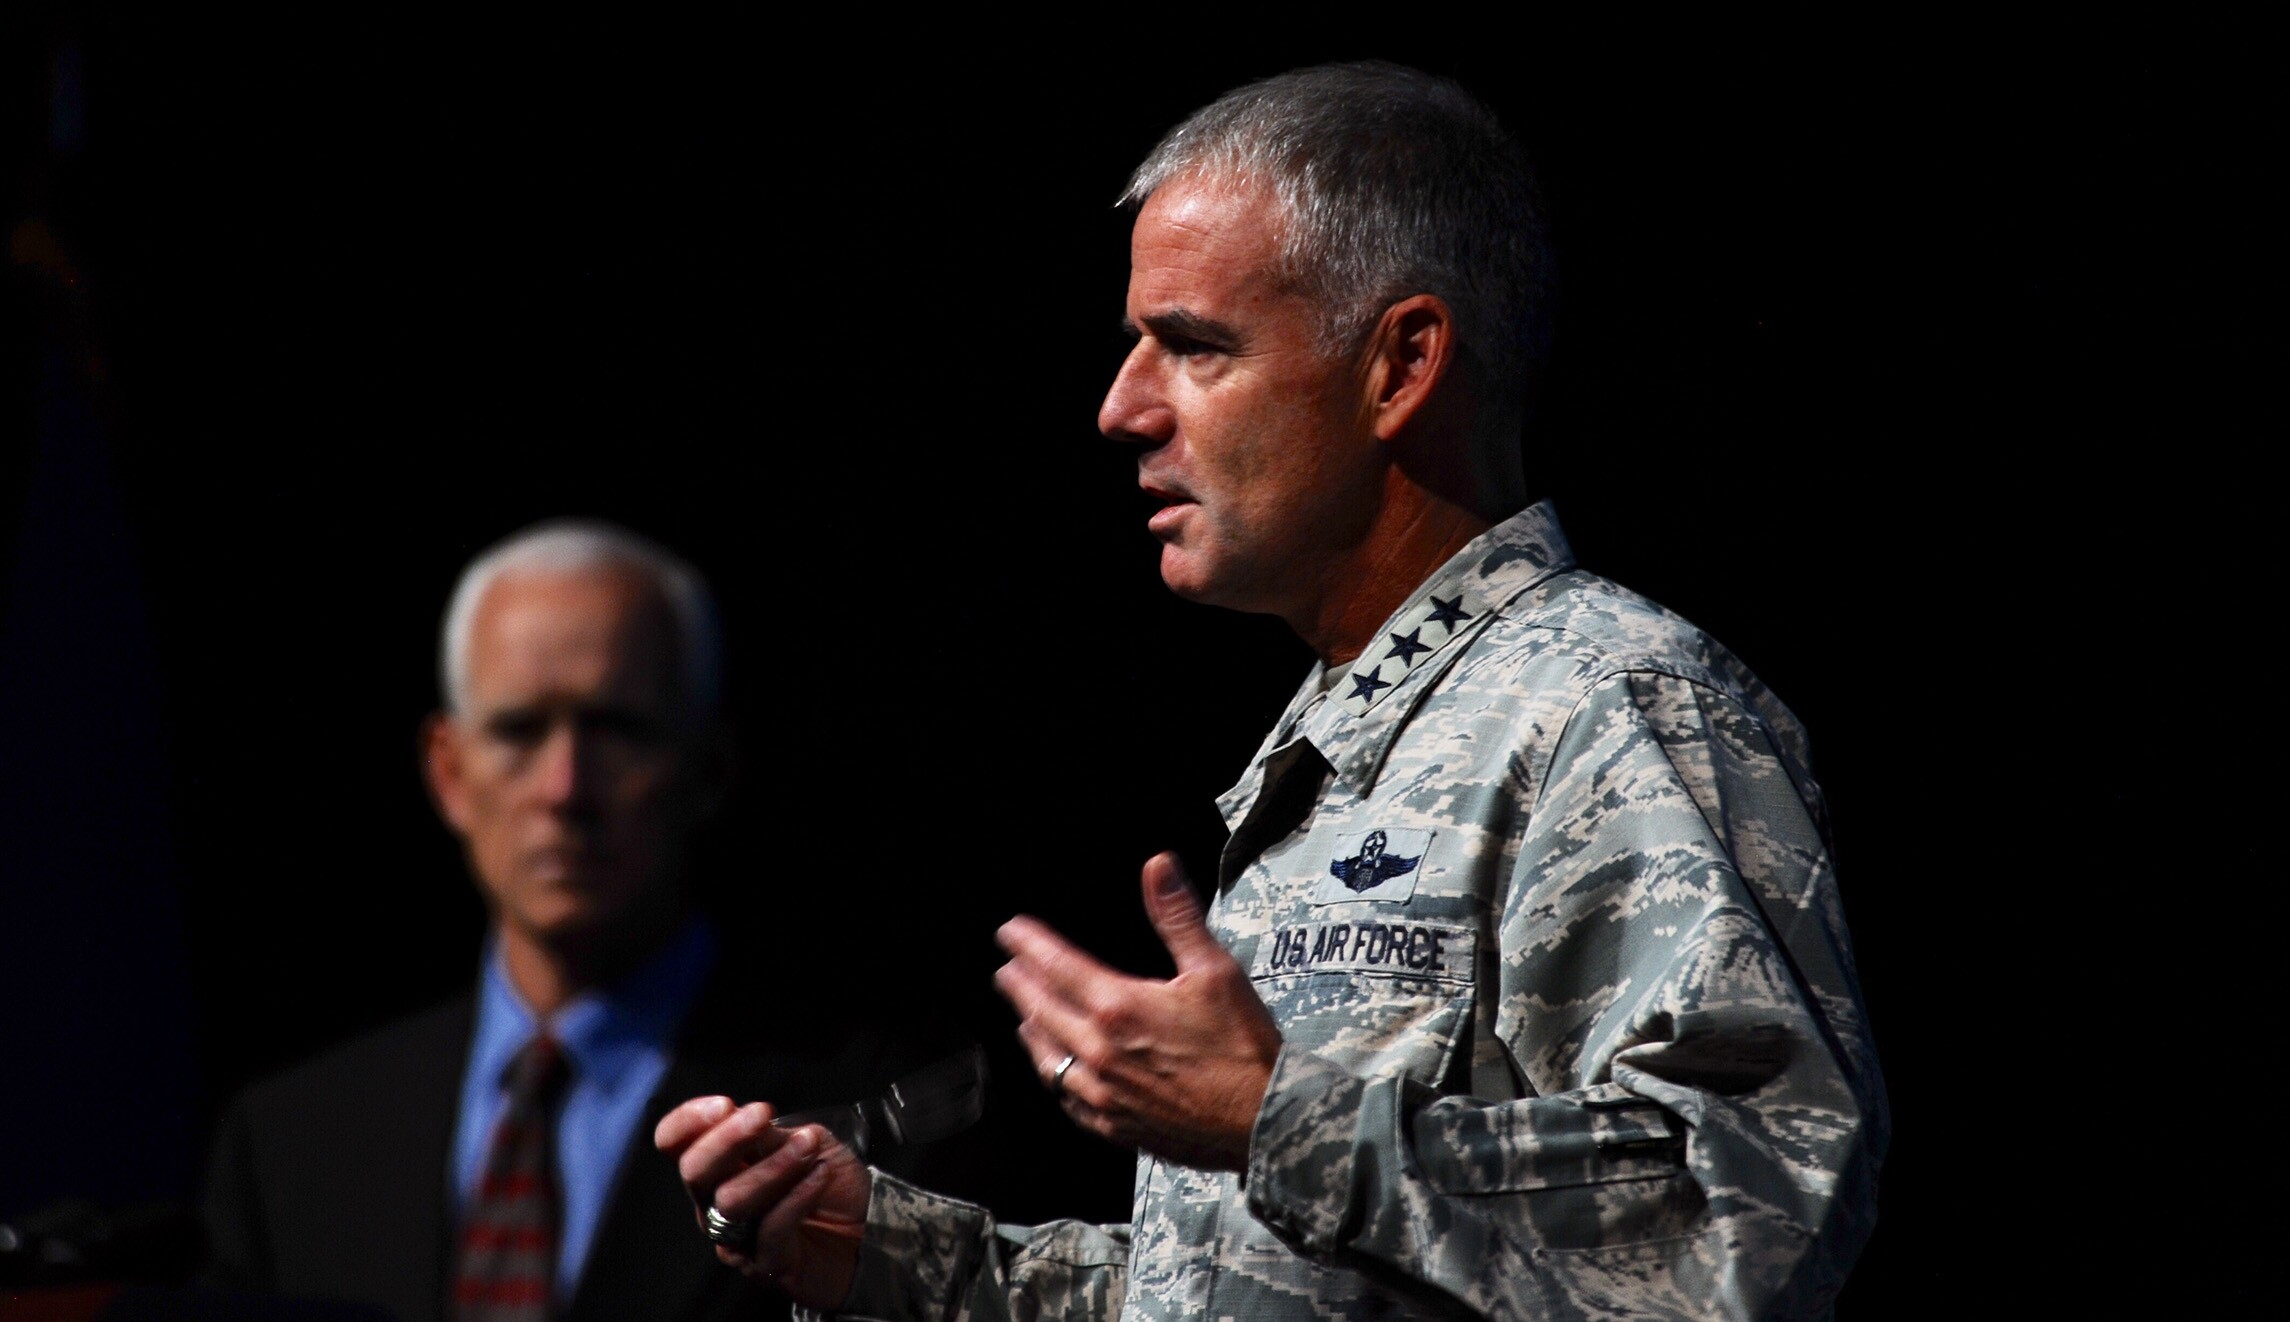 Air Force general: 'If you can't treat someone with dignity and